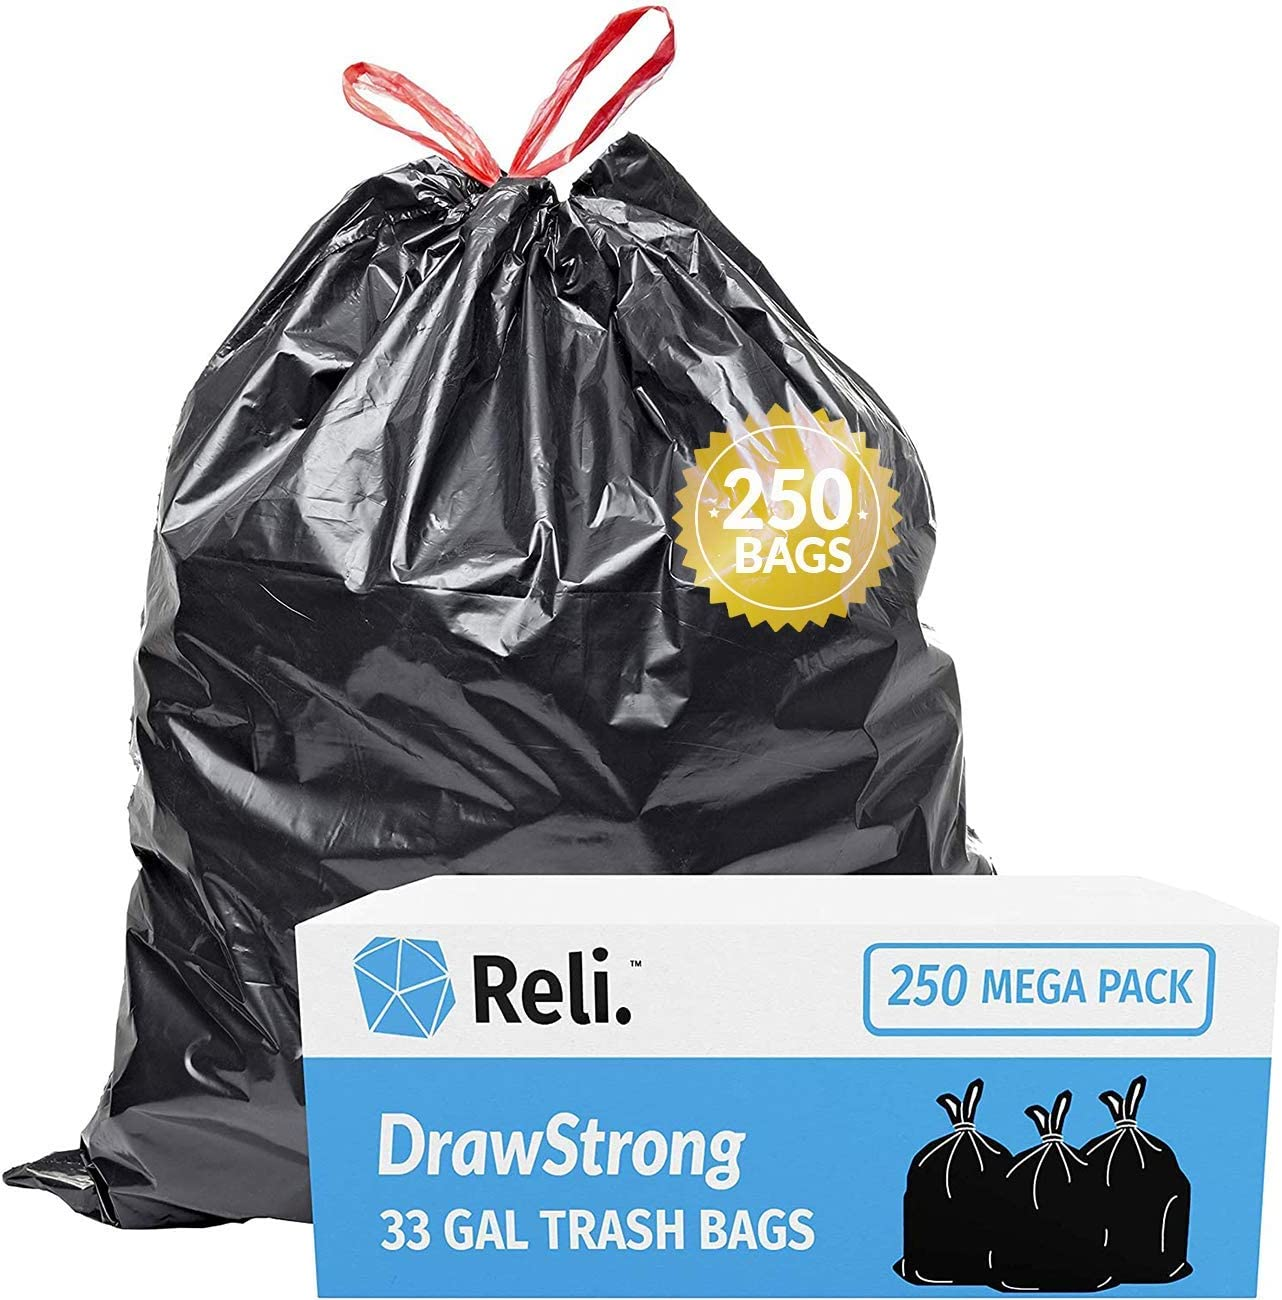 Strong Large Trash//Garbage Bags 30 Gallon, Multipurpose Drawstring Family Pack Unscented